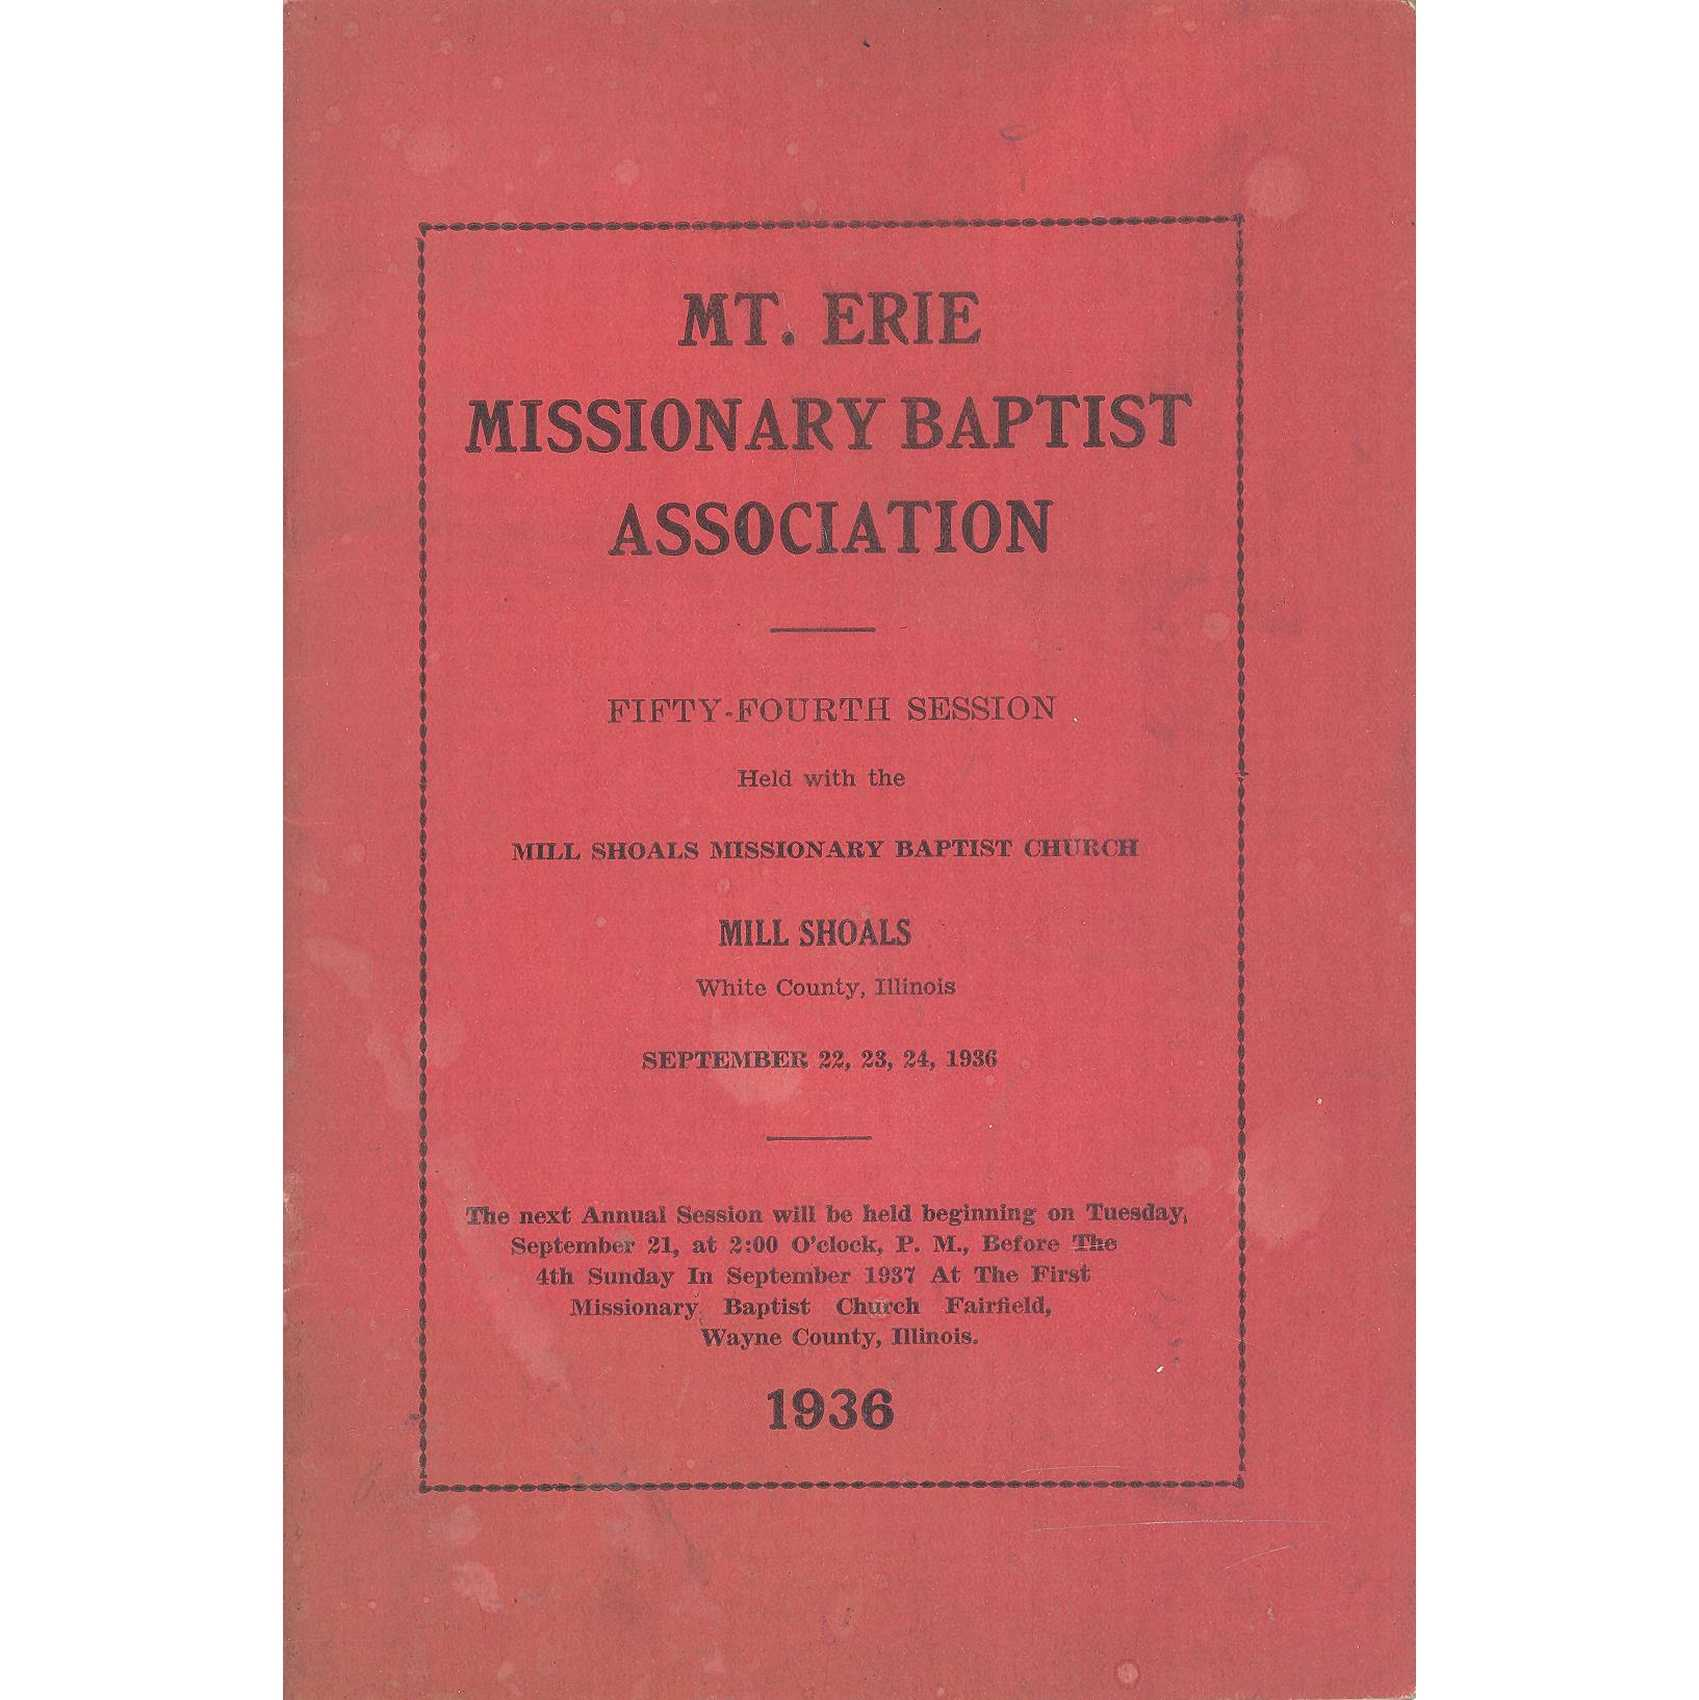 Image for Flint River Baptist Association, Minutes of the Eighty-Ninth Annual Session